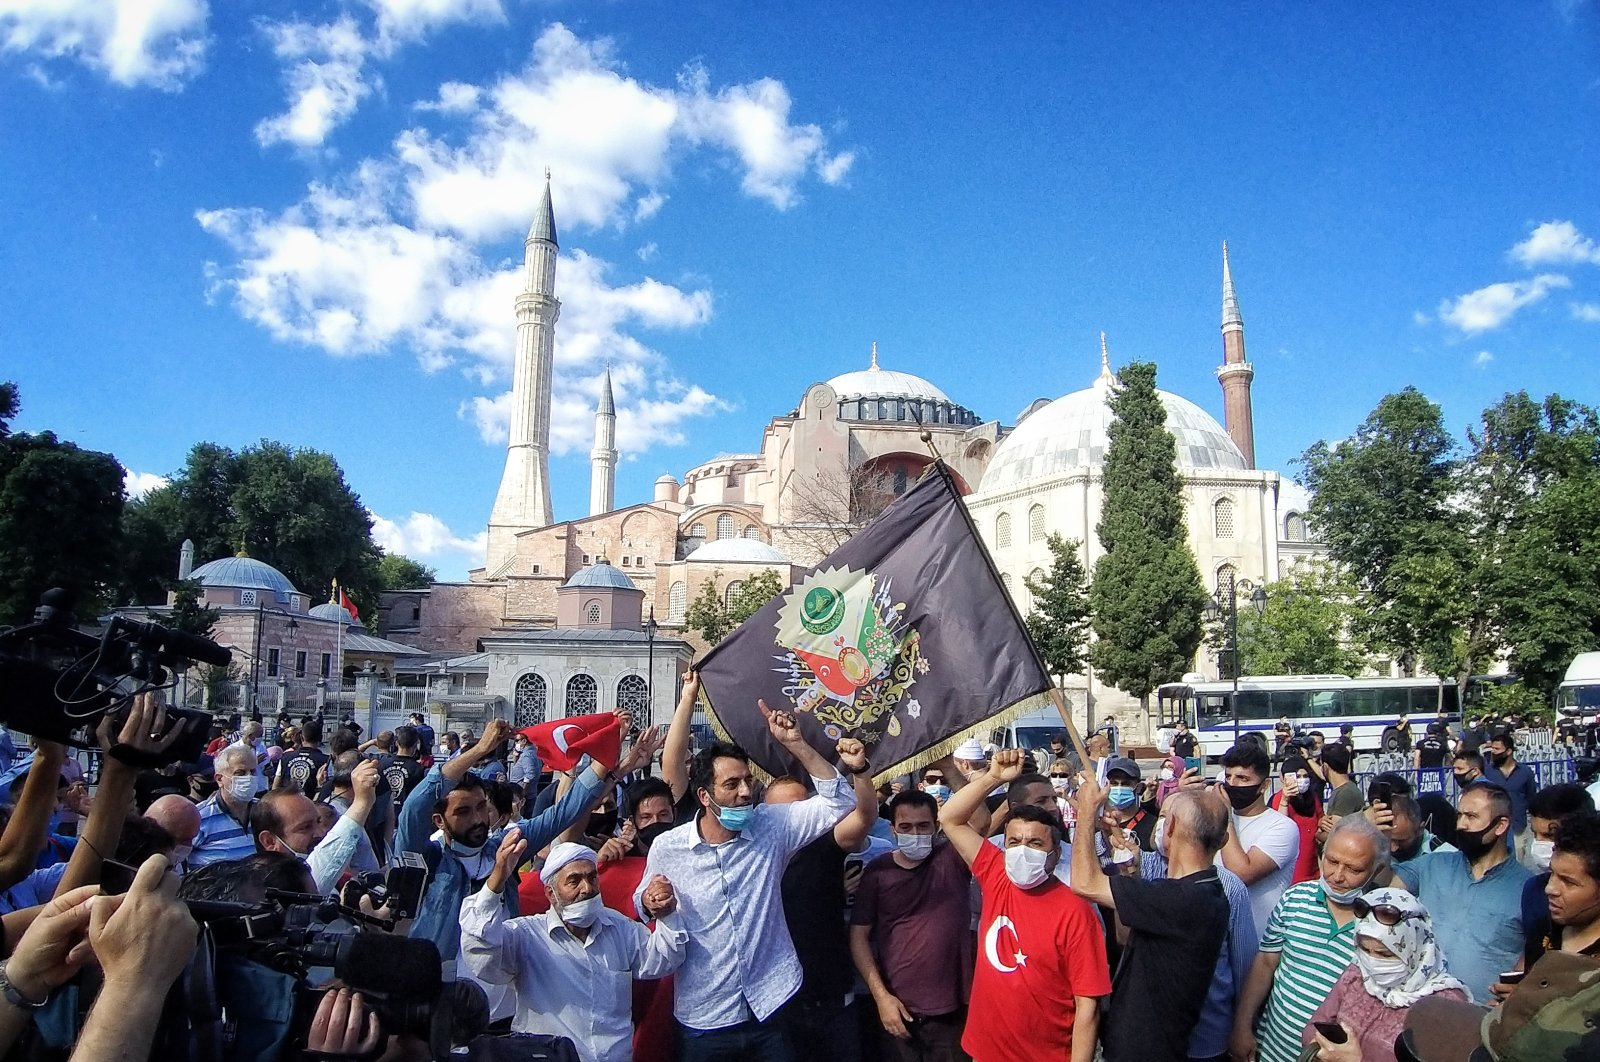 People celebrating the court ruling in front of Hagia Sophia, in Istanbul, Turkey, July 10, 2020. (Photo by Uǧur Yildirim)